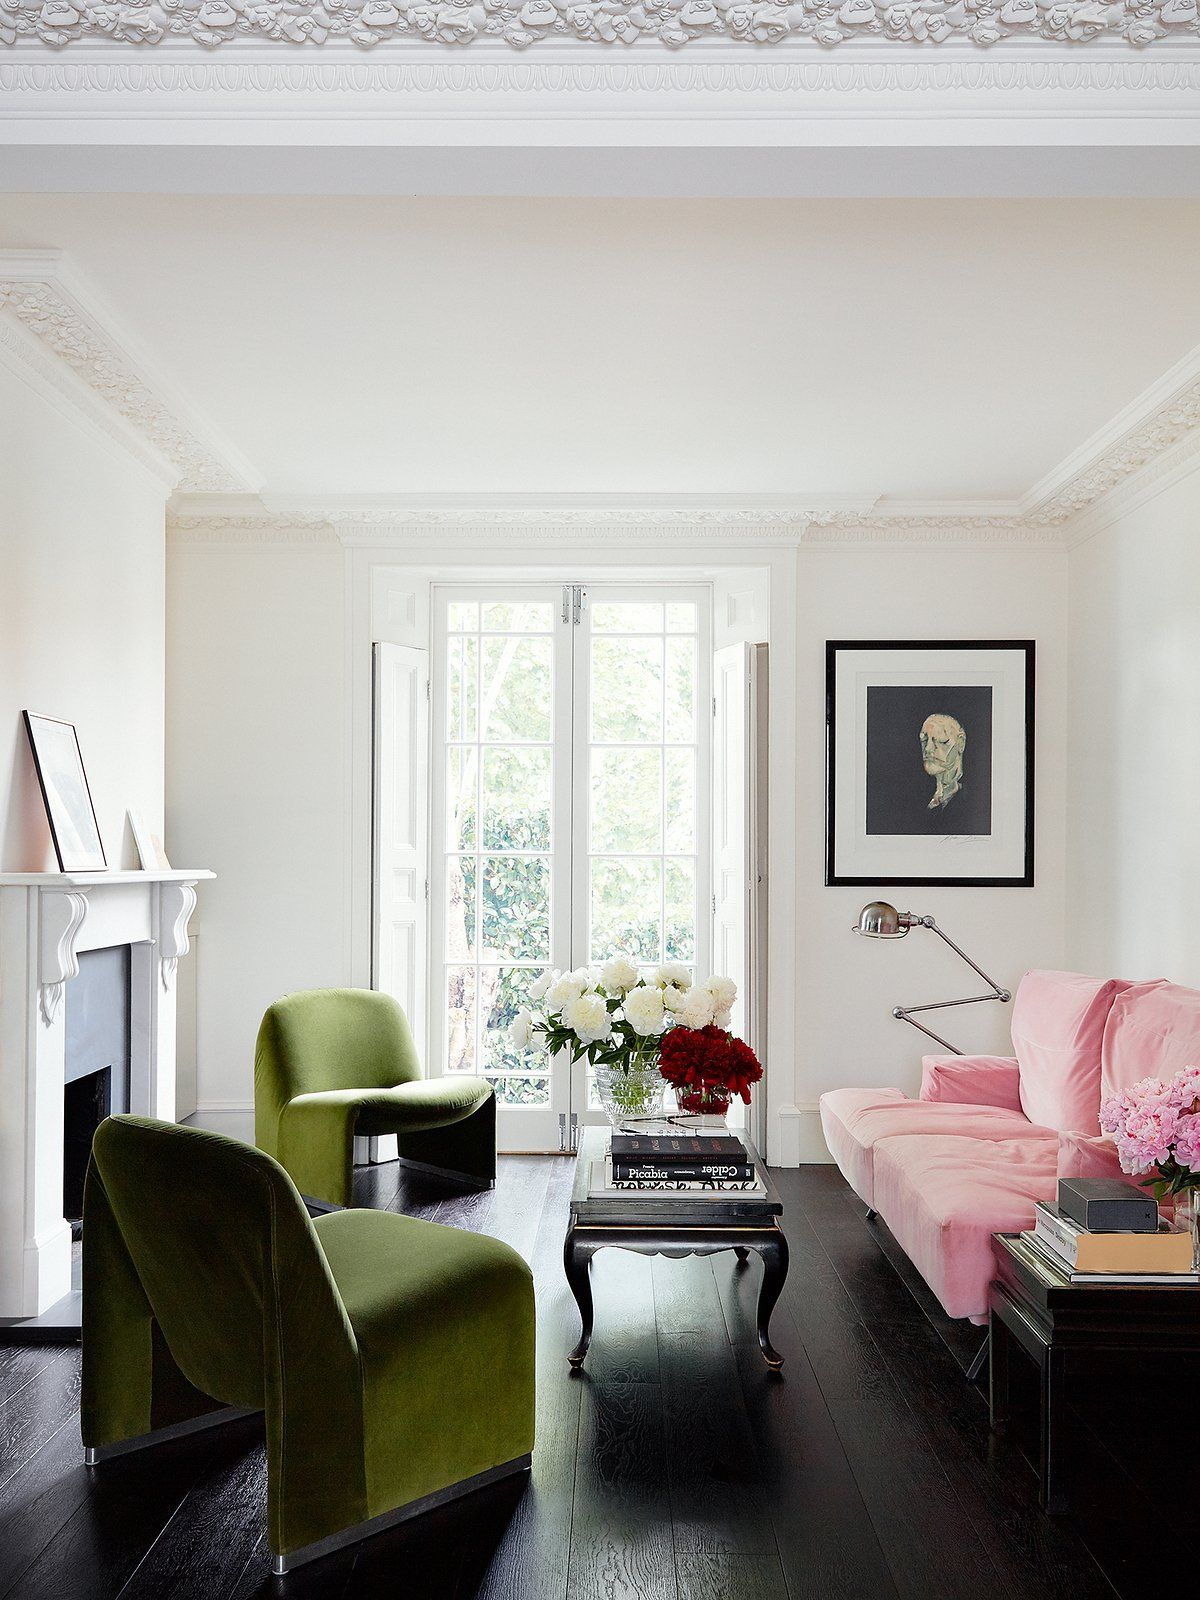 How chic is this London home belonging to fashion designer Simone Rocha Simone Rocha s London Home   Francis bacon  William blake and Bacon. Home Fashion Design. Home Design Ideas